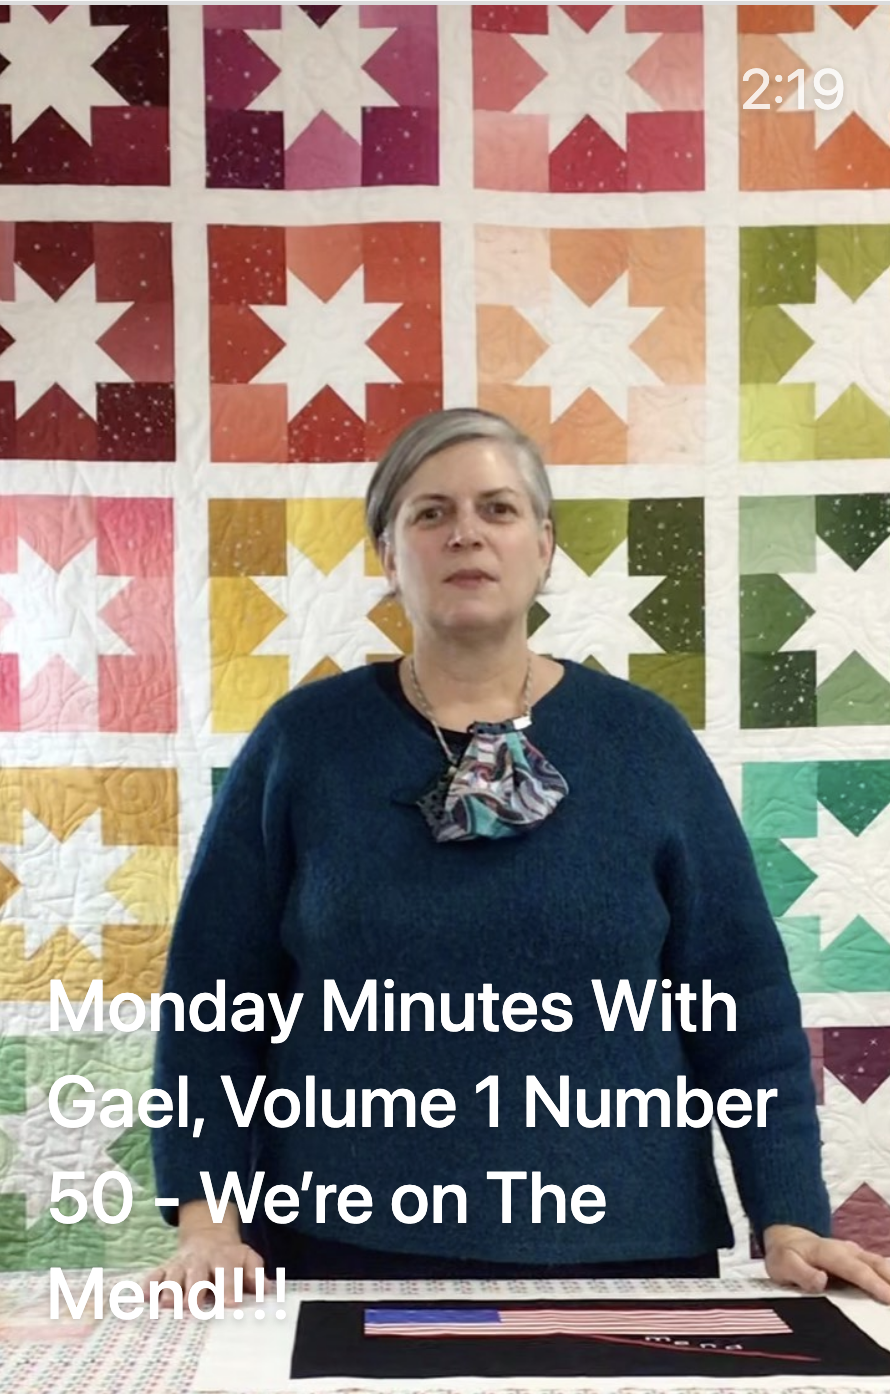 Monday Minutes with Gael - Vol. 1 Number 50 - We're on the Mend!